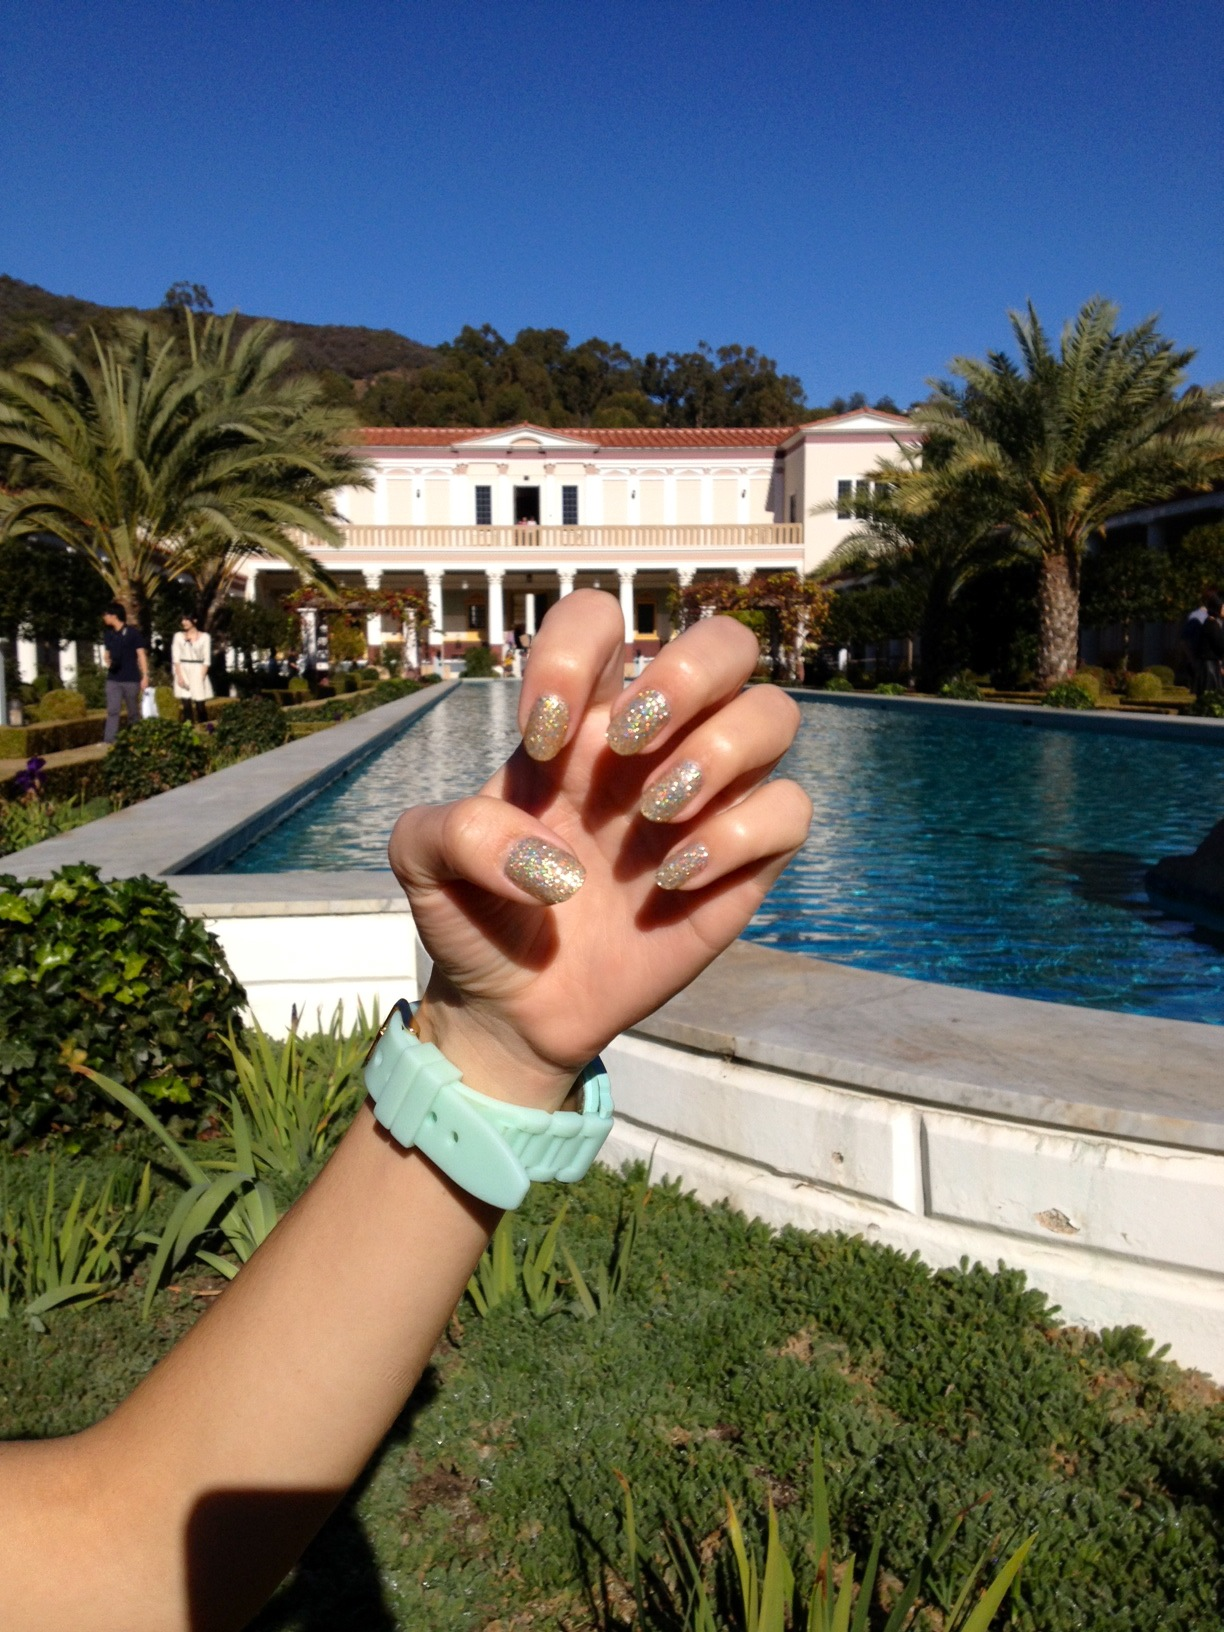 Nailz & I had a lot of fun at The Getty Villa. Gorgeous day!